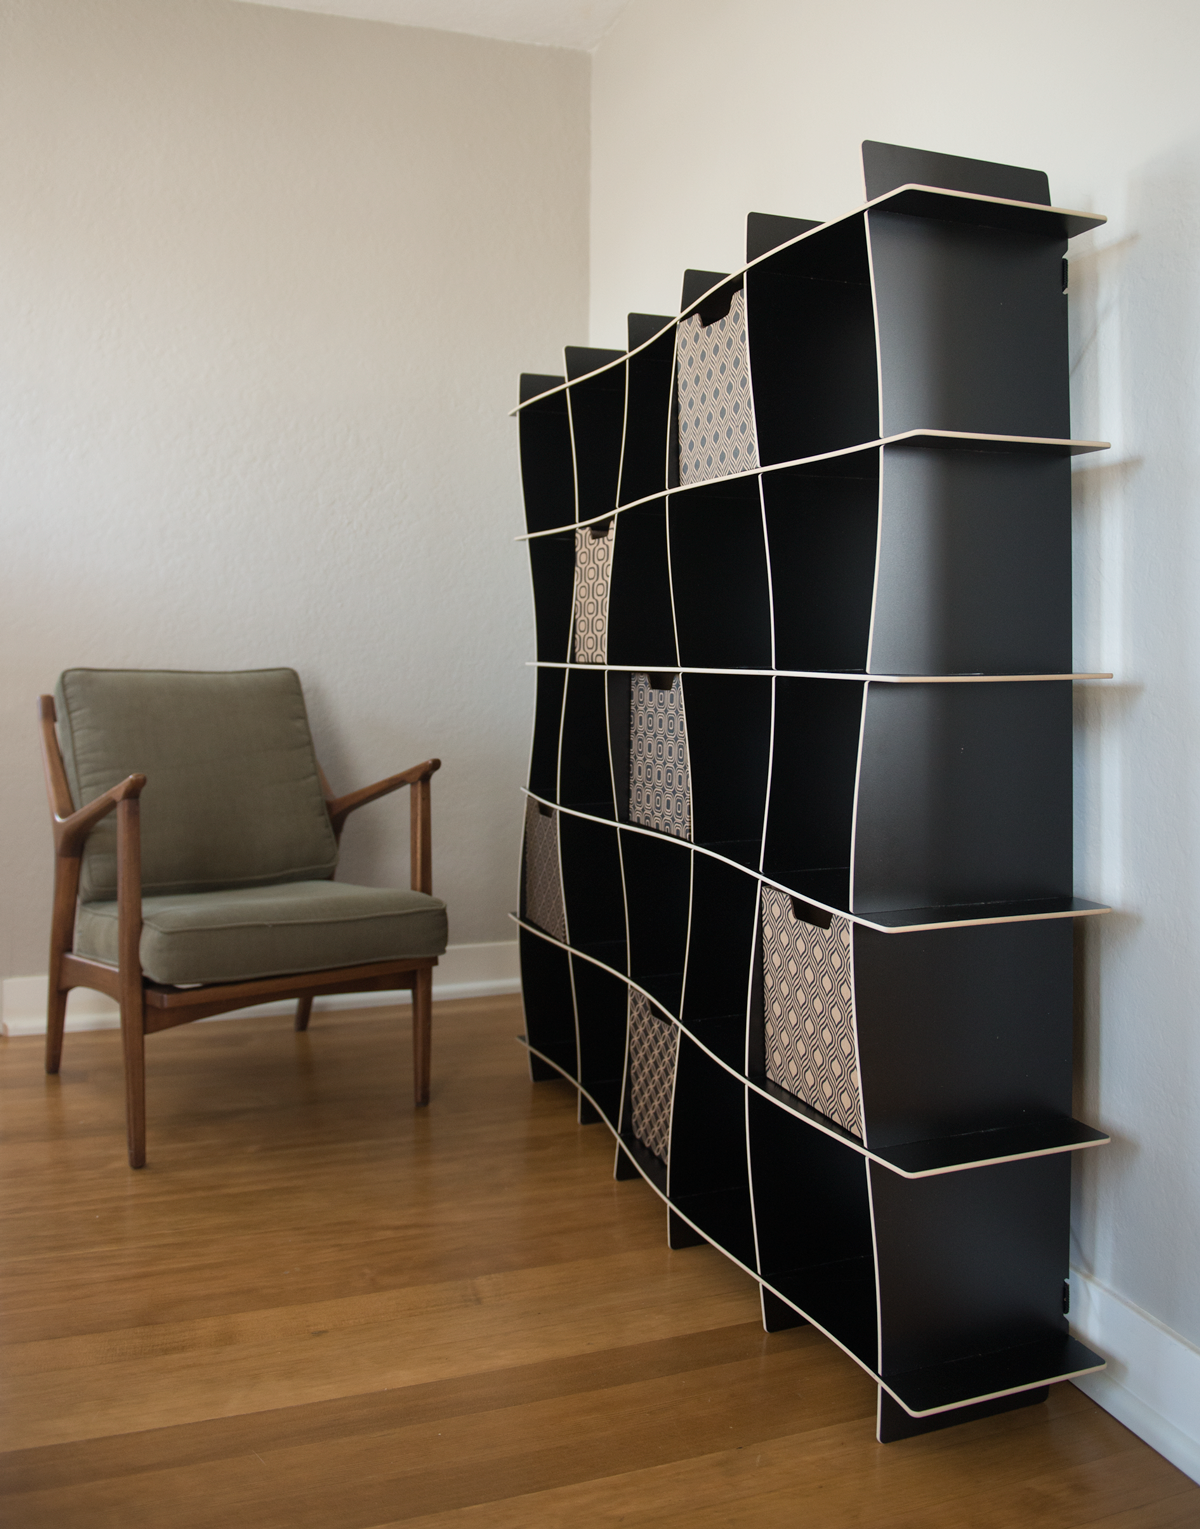 25 Cubby Black Wave Bookshelf With Cubby Storage Bins